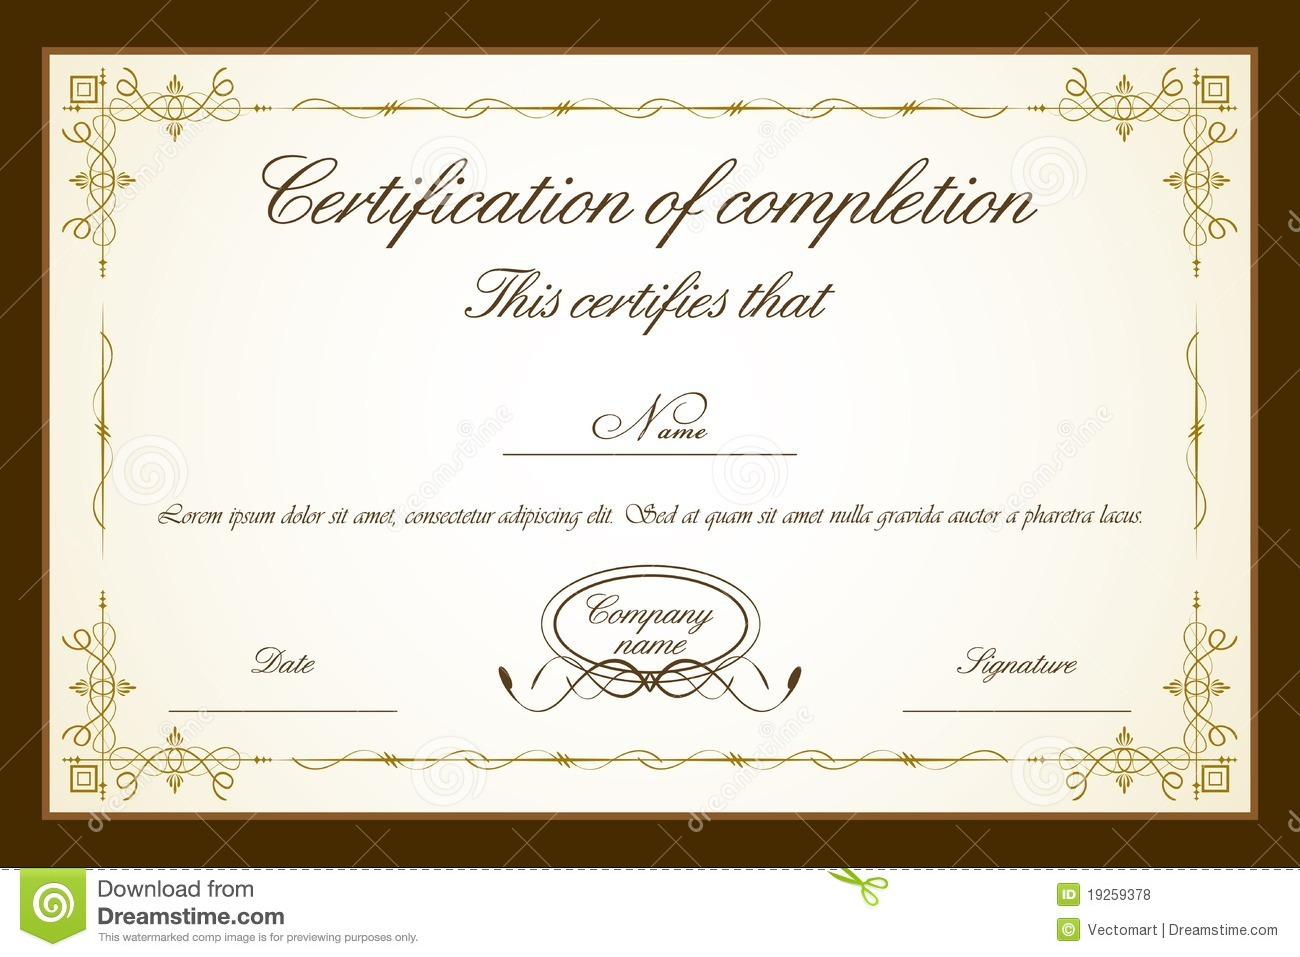 Certificate stock illustrations 112003 certificate stock certificate stock illustrations 112003 certificate stock illustrations vectors clipart dreamstime yadclub Choice Image